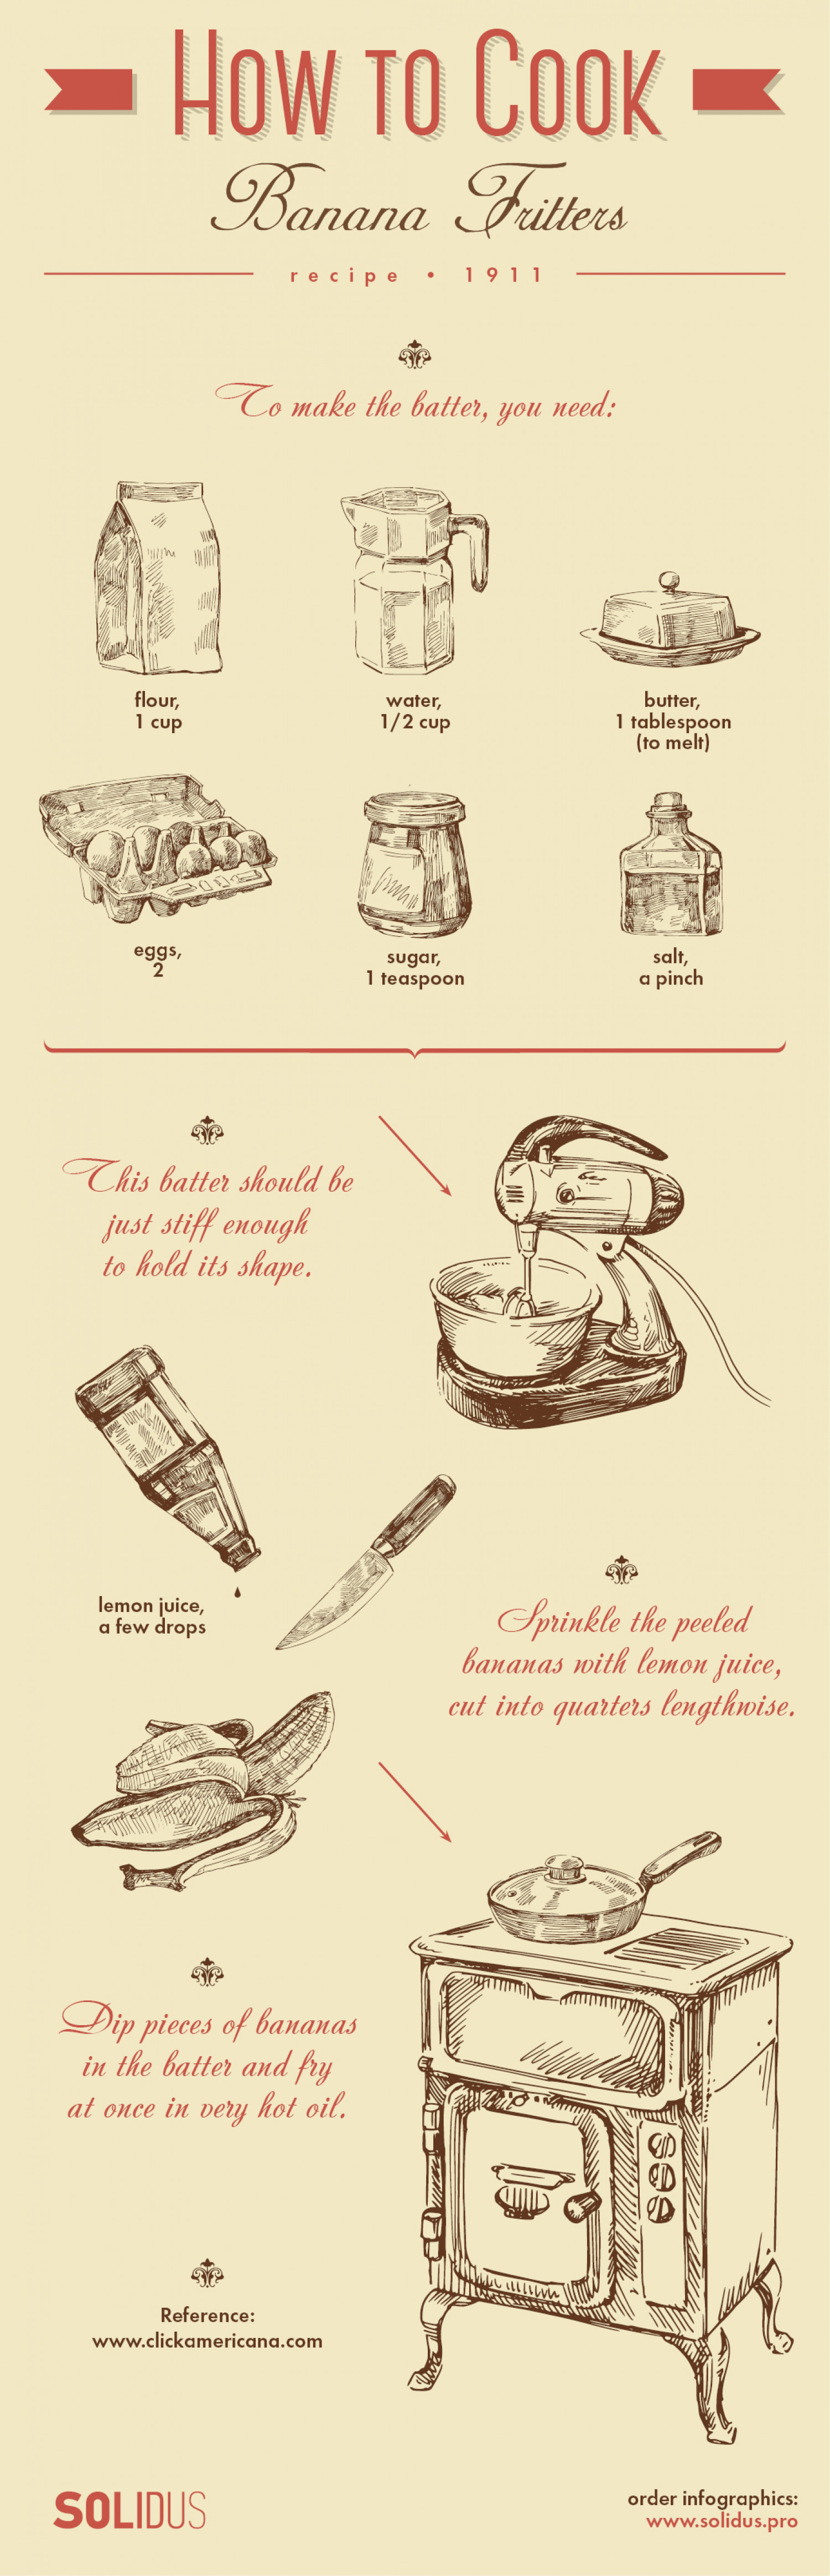 How To Cook Banana Fritters (Recipe 1911) Infographic